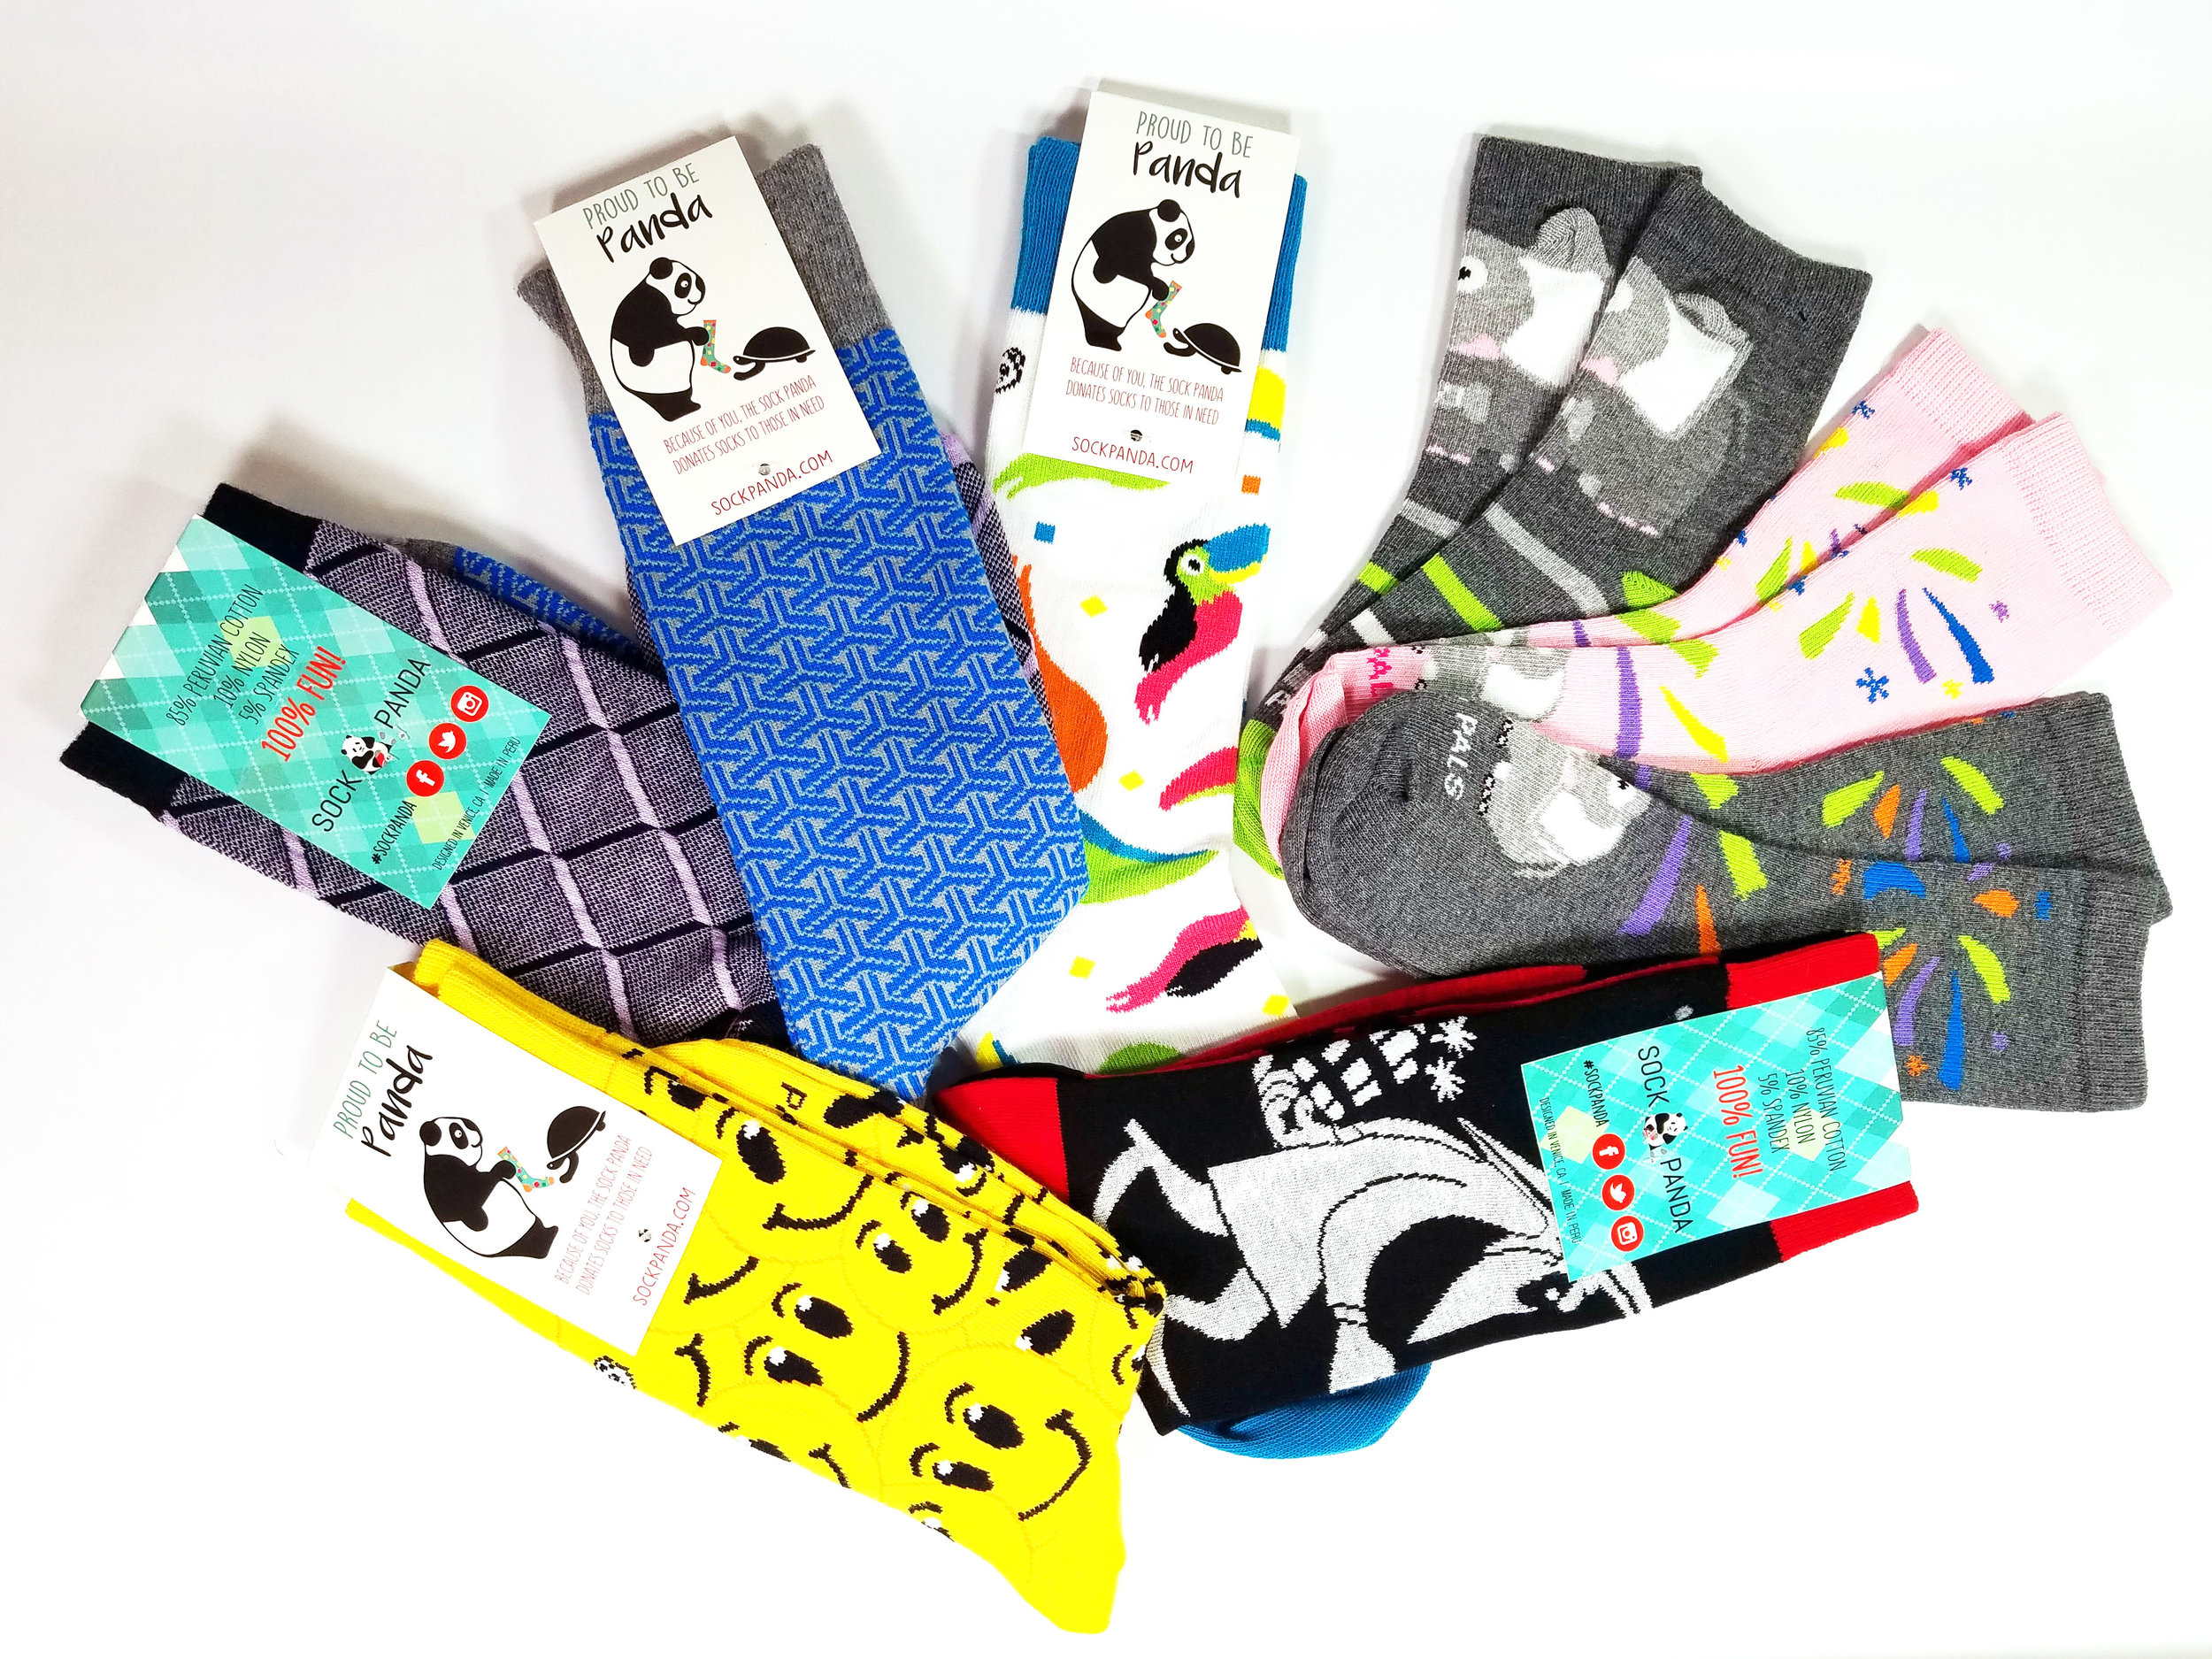 Sock Panda - Not only can you receive a gift, but you'll be giving back to others, since Sock Panda donates socks to those in need for every subscription purchased. To date, the company has donated nearly 100,000 socks to homeless shelters, hospitals, and under-privileged classrooms & low-income senior centers around the country. That's a lot of socks, and a lot of giving! Read more, here.